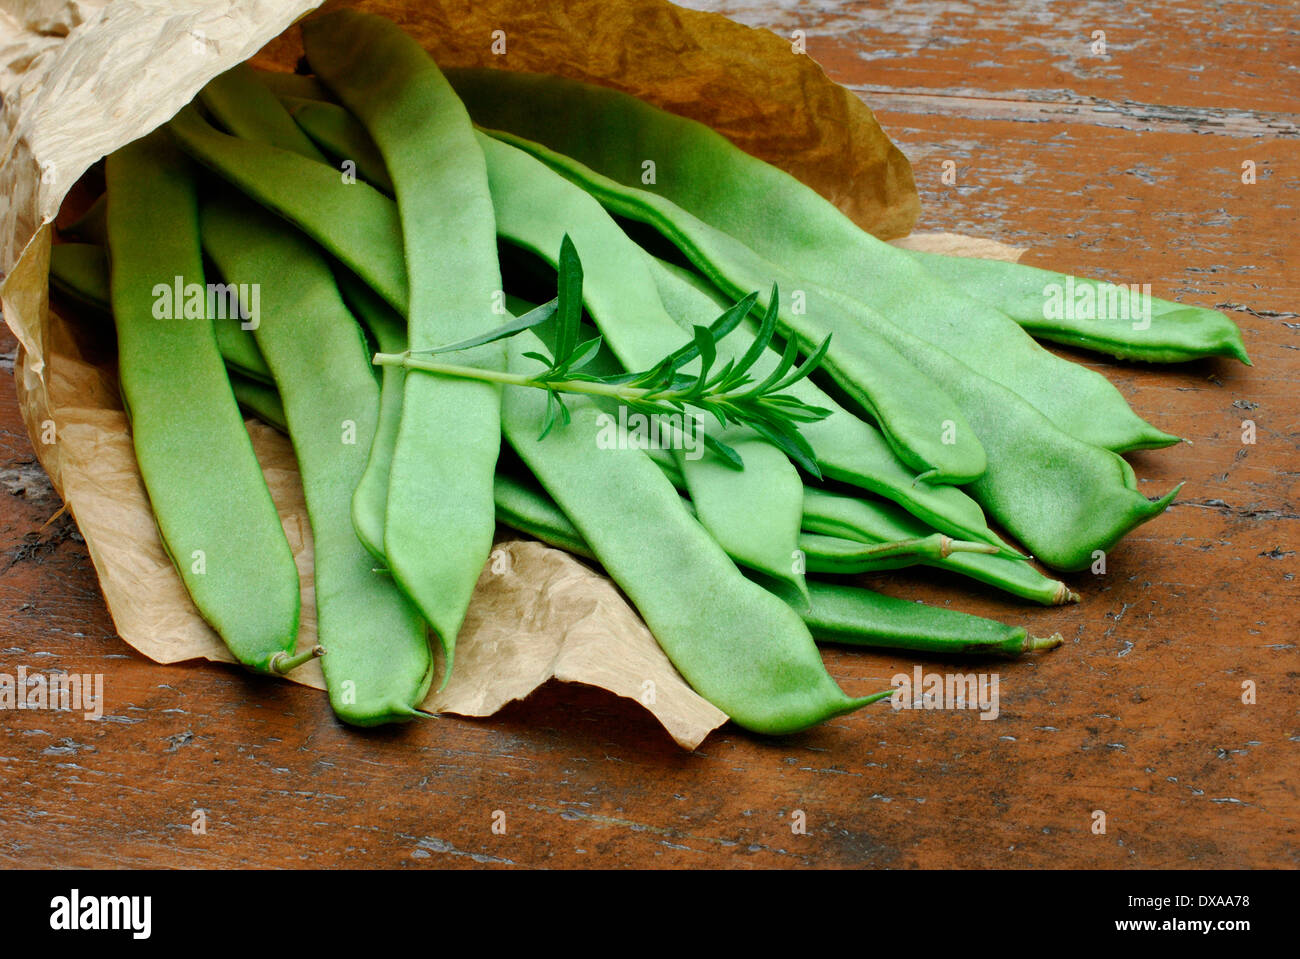 Beans and Summer Savory - Stock Image